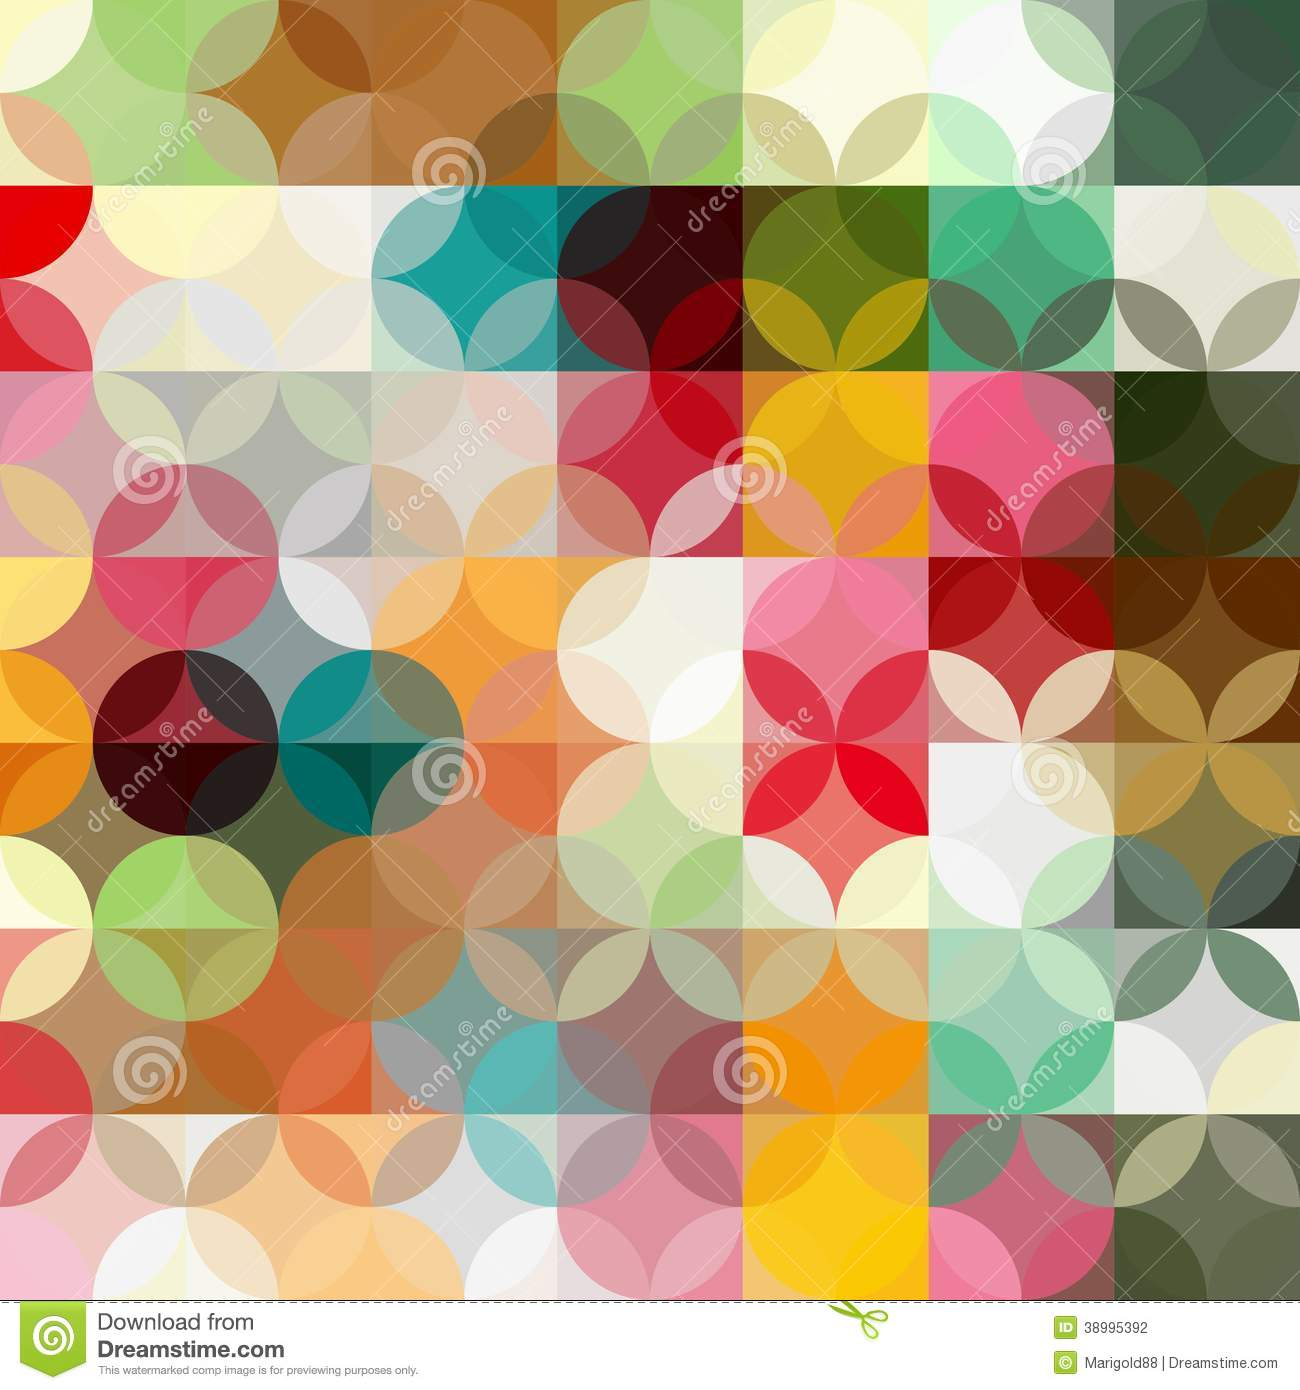 abstract geometric colorful background - photo #27